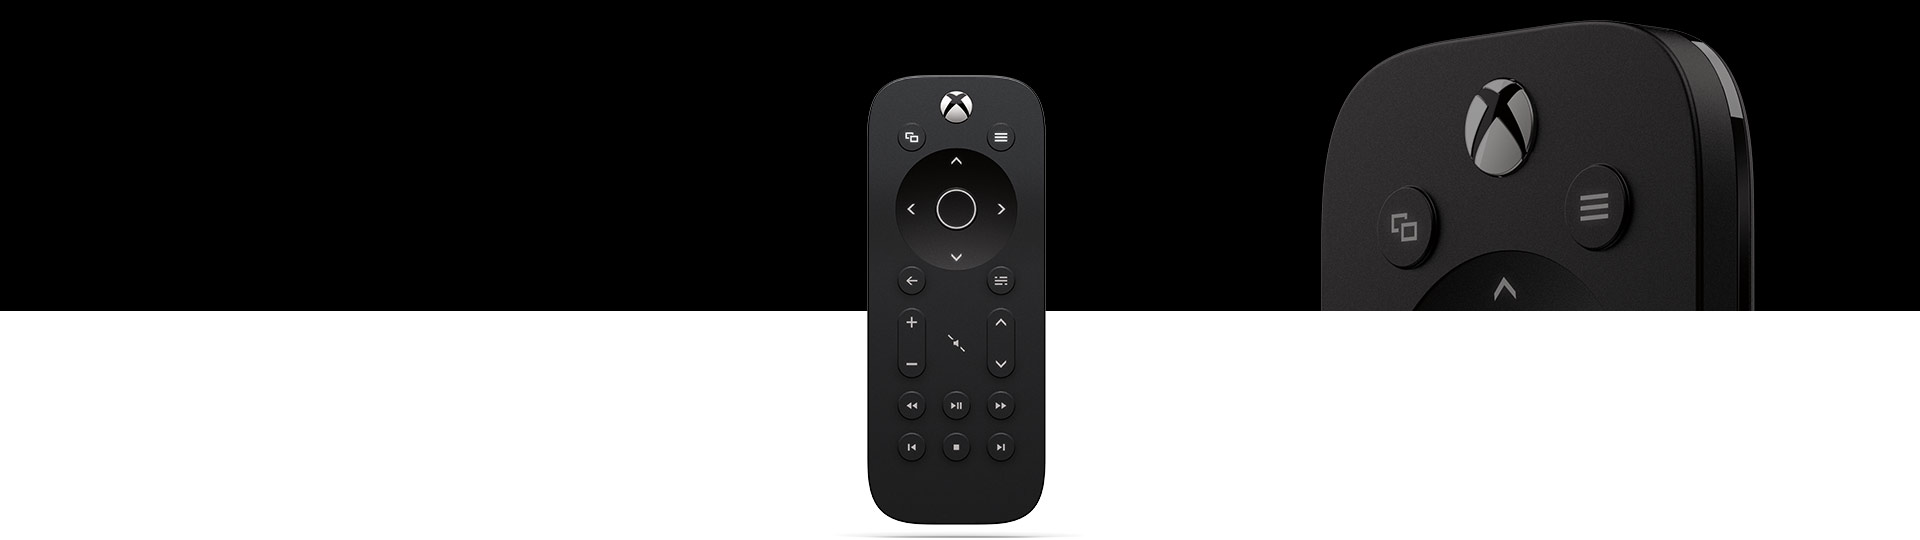 Control multimedia para Xbox One